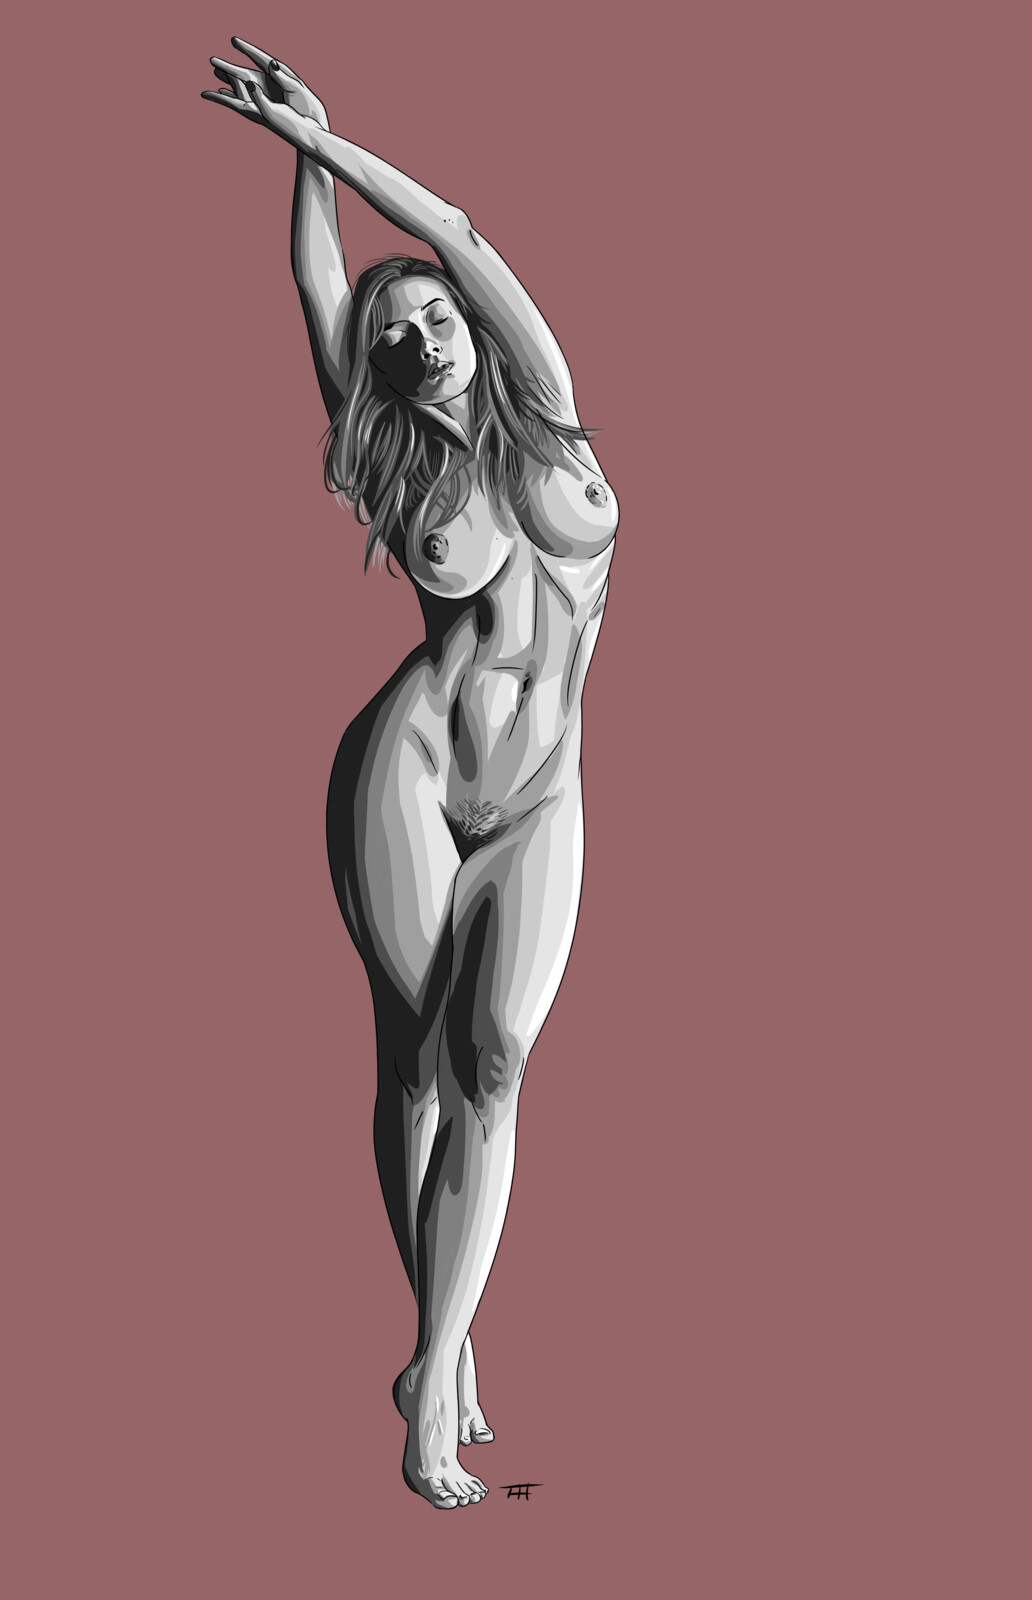 A nude study mostly trying to nail down a preferred style when shading digitally.